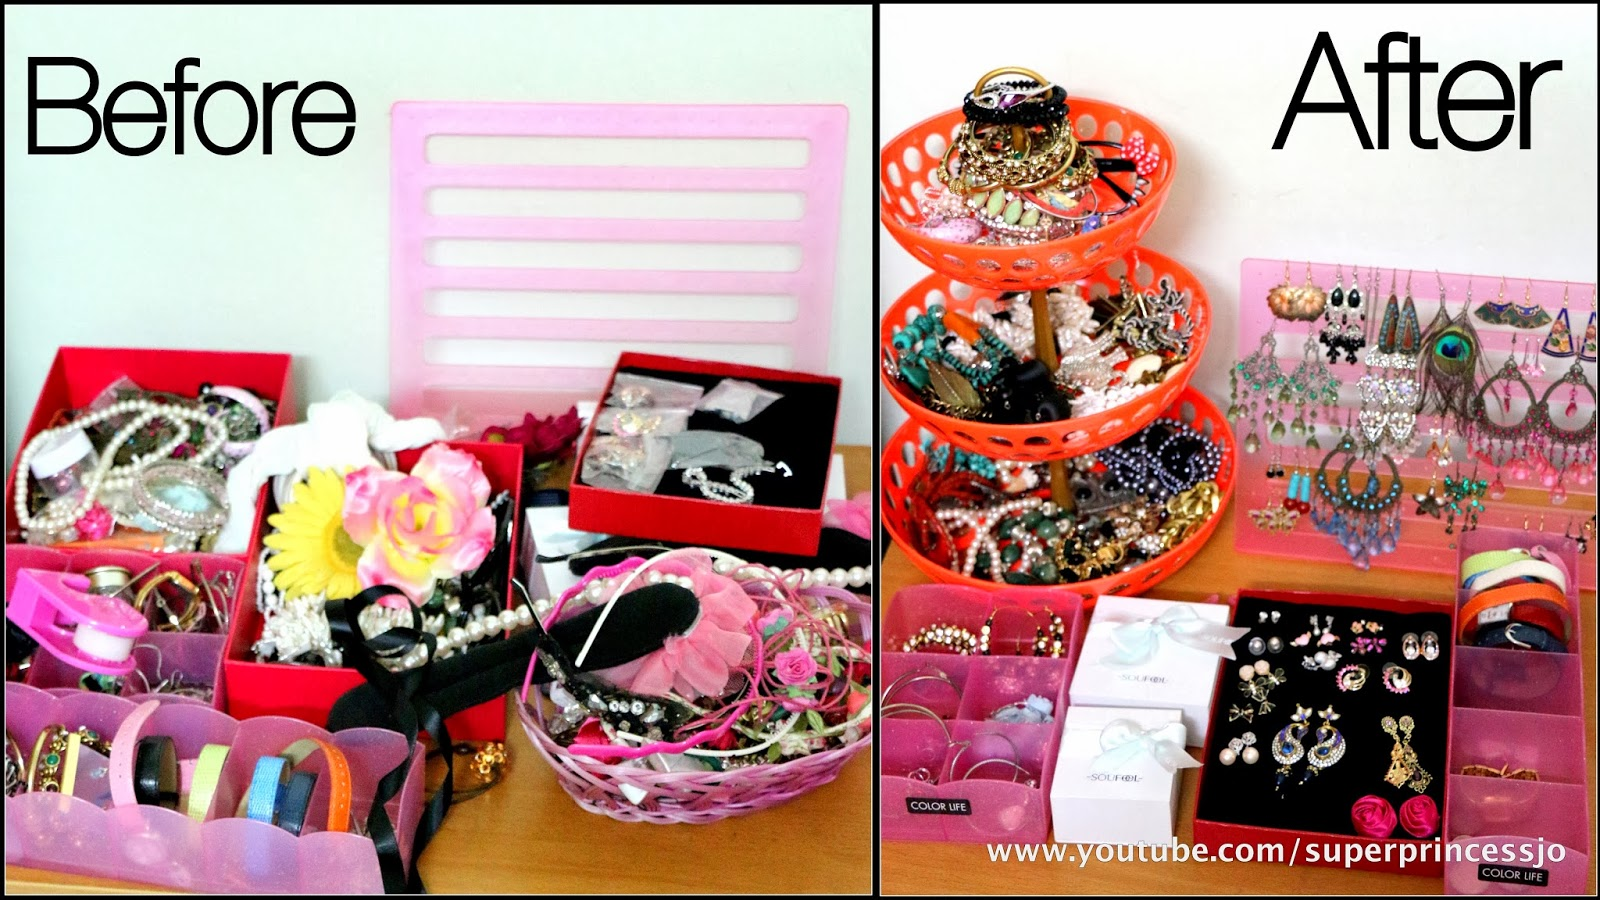 The Pink Organizers Are To Organize Your Any Stuff, You Can Also Use These  As Pink Makeup Organizers (previously I Was Organizing My Makeup In These) .